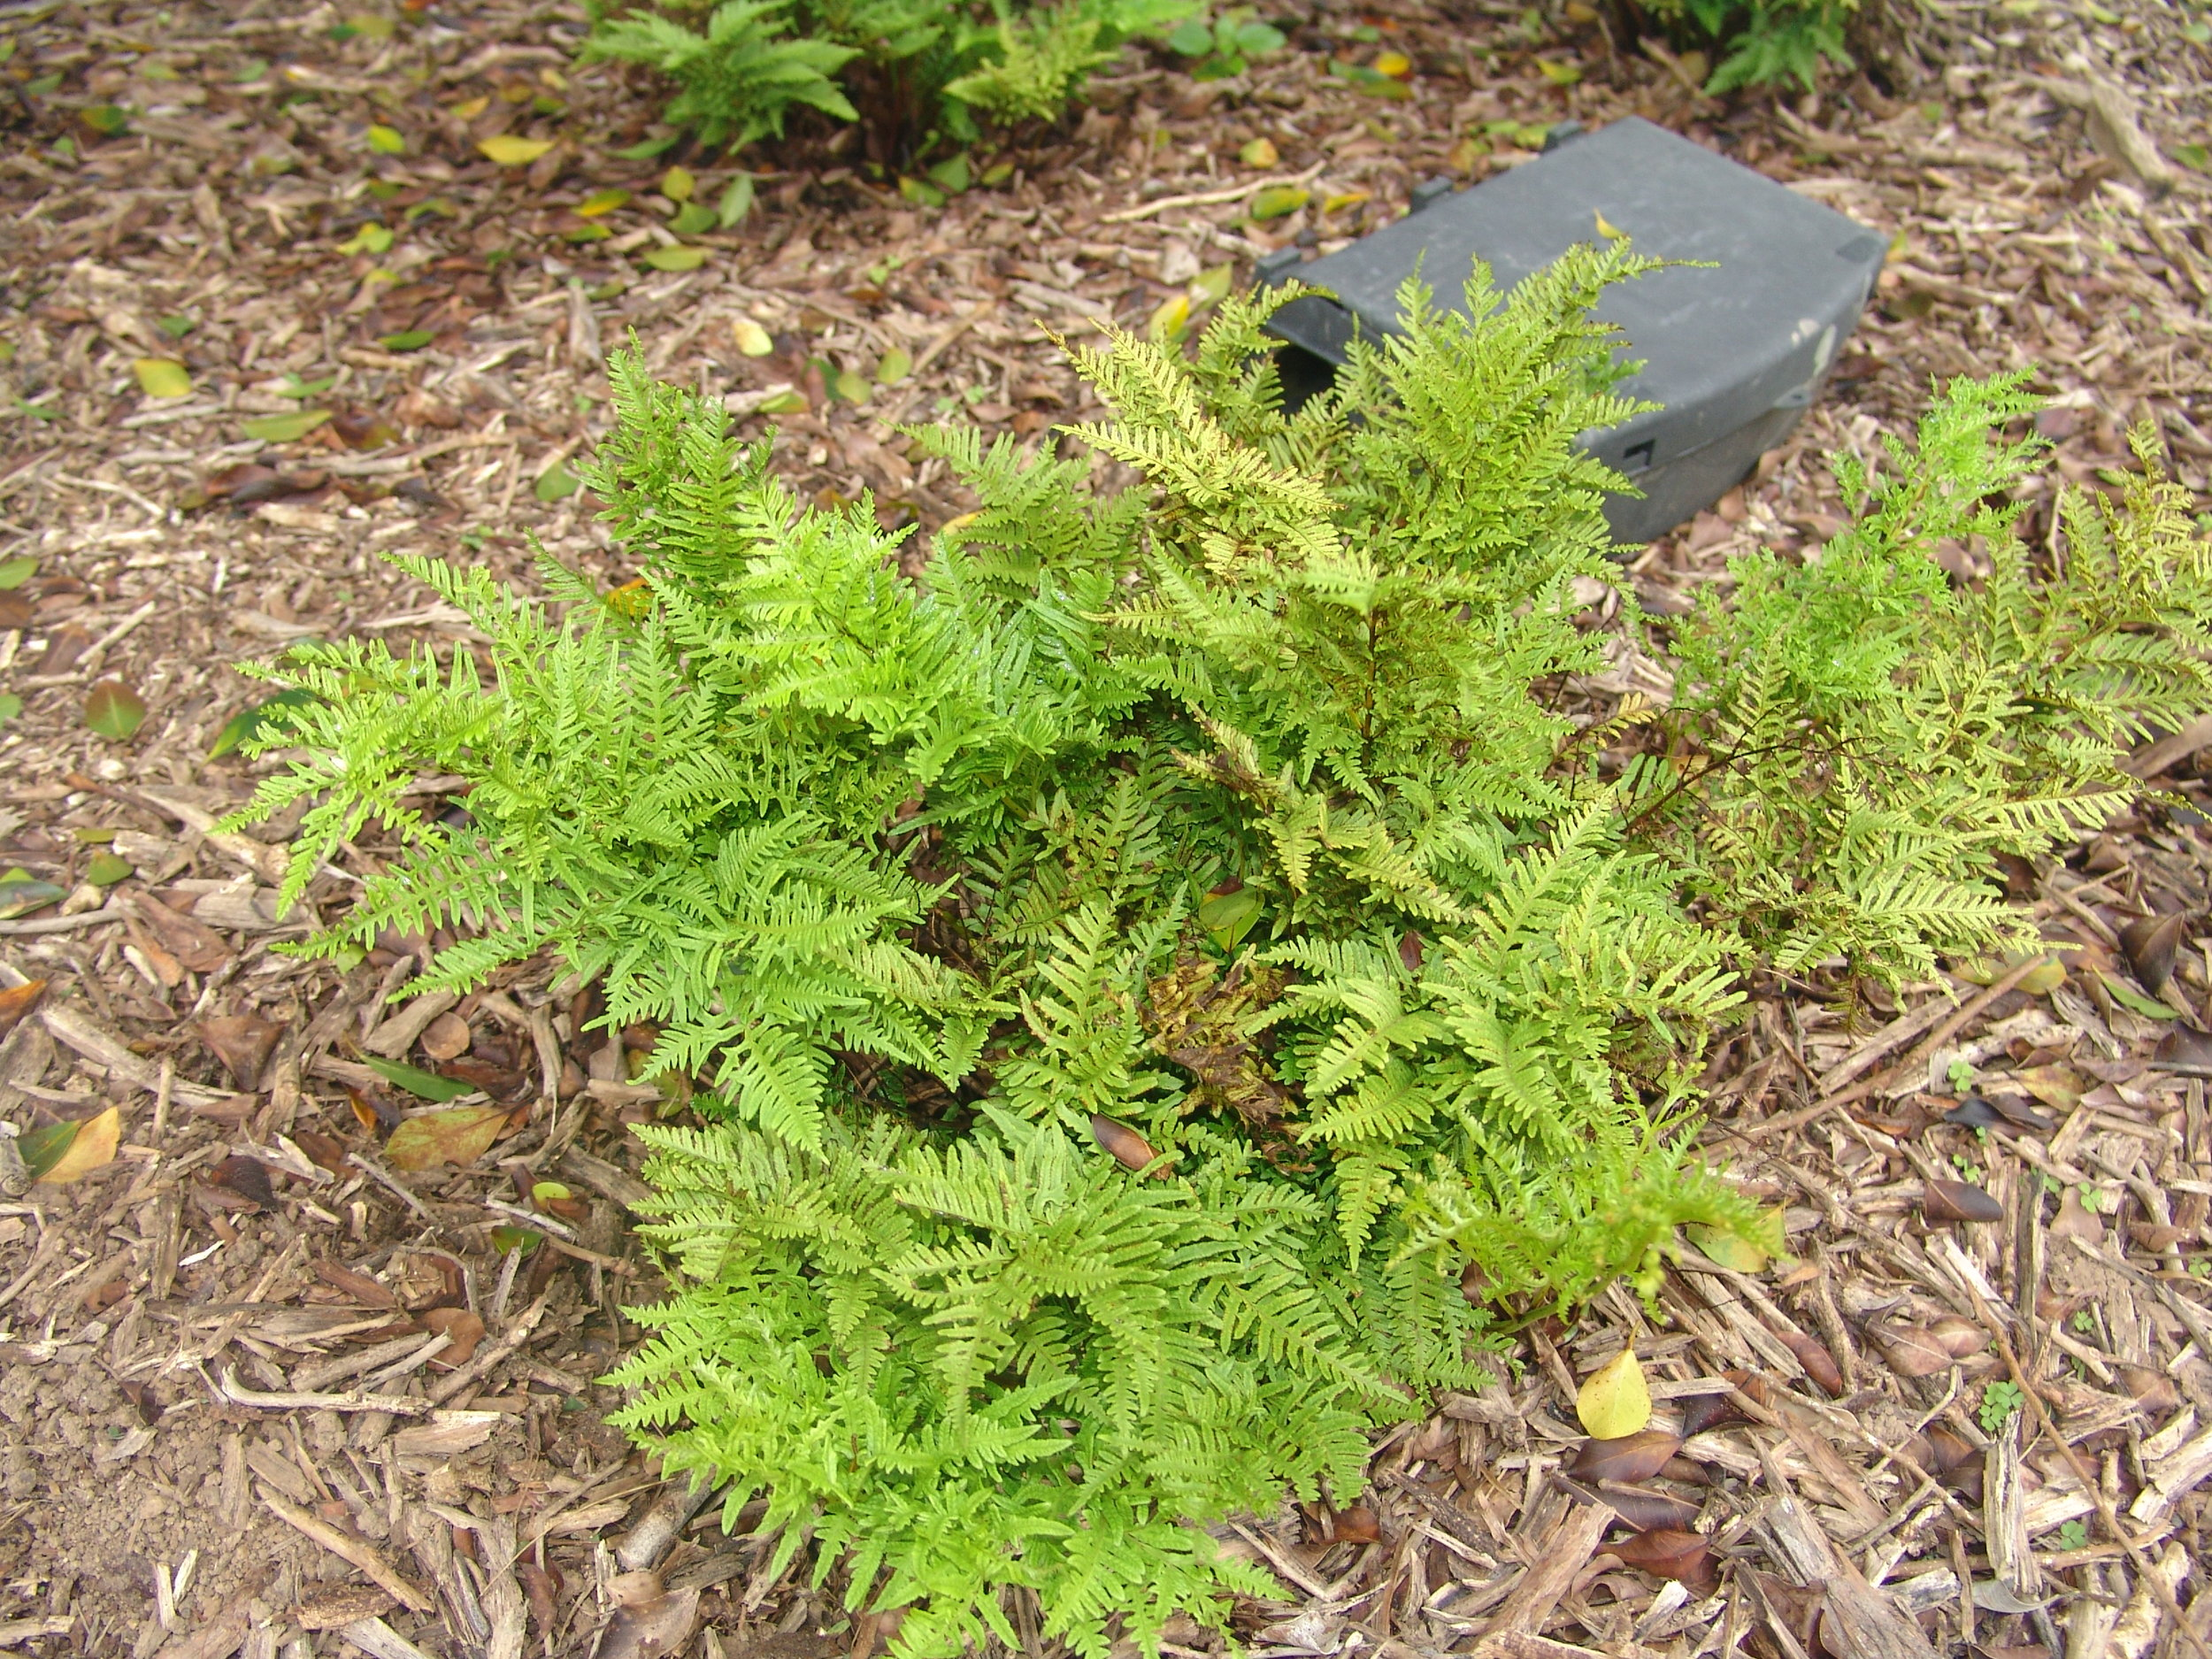 One of Ascension Island's endemic ferns - Pteris adscensionis